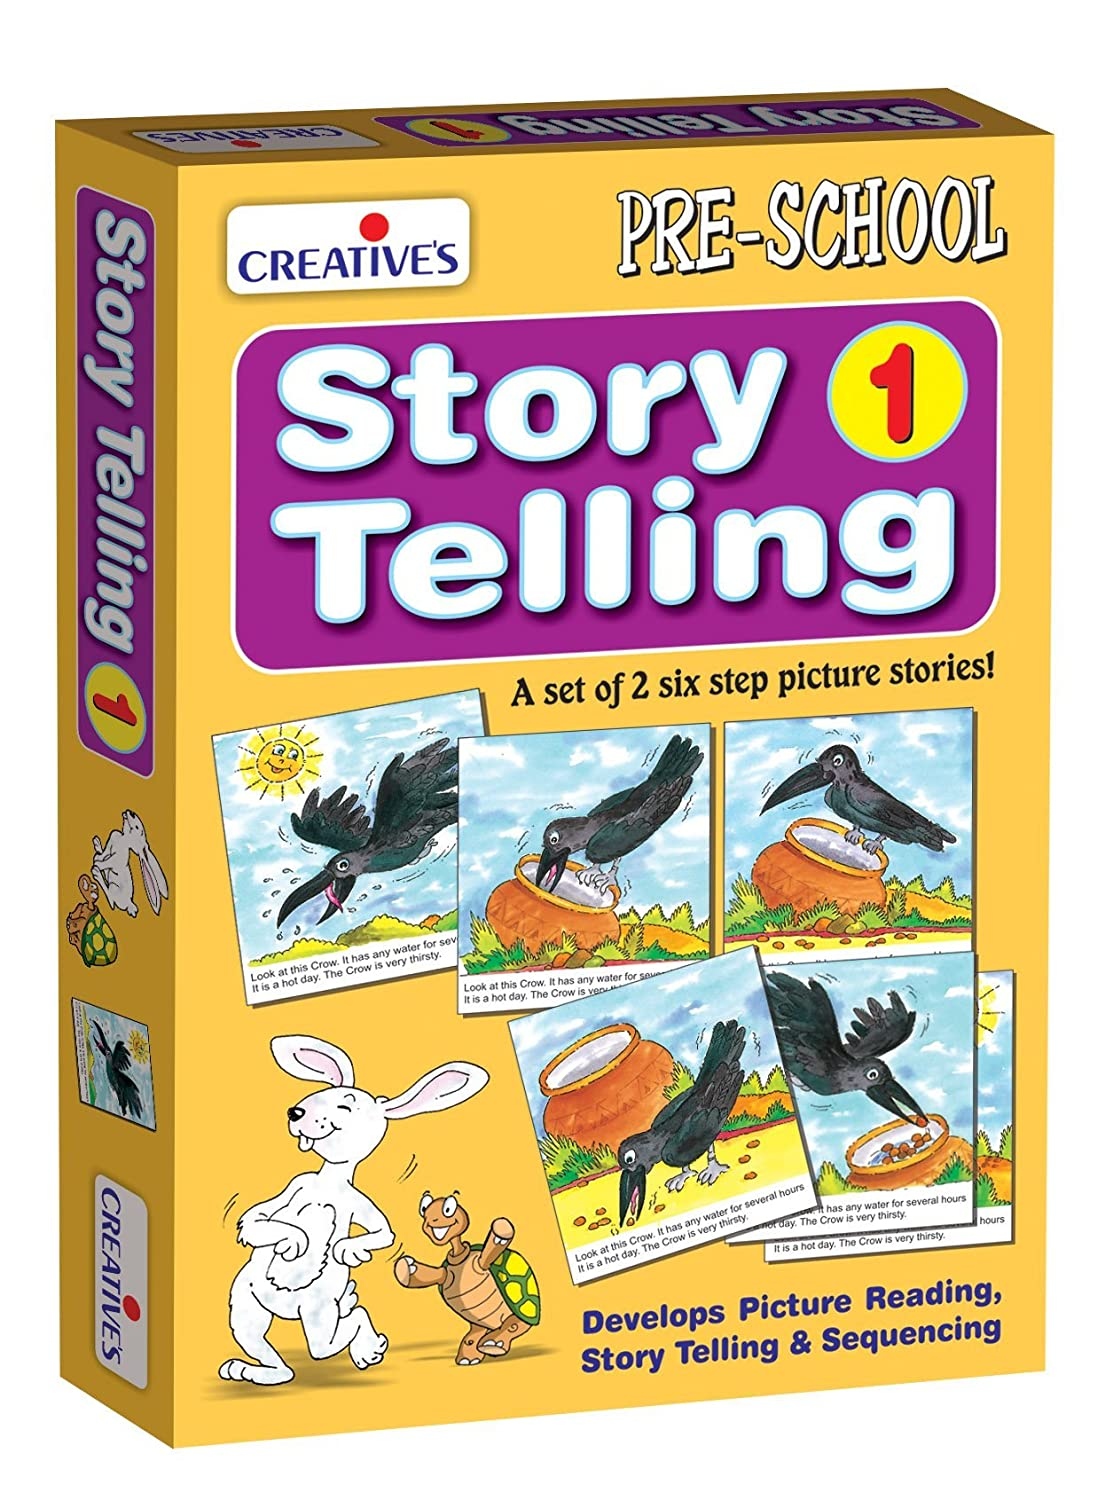 Creative Pre-School - Story Telling Step-by-Step-1 (6 Steps) - (CRE0612) Creative Educational